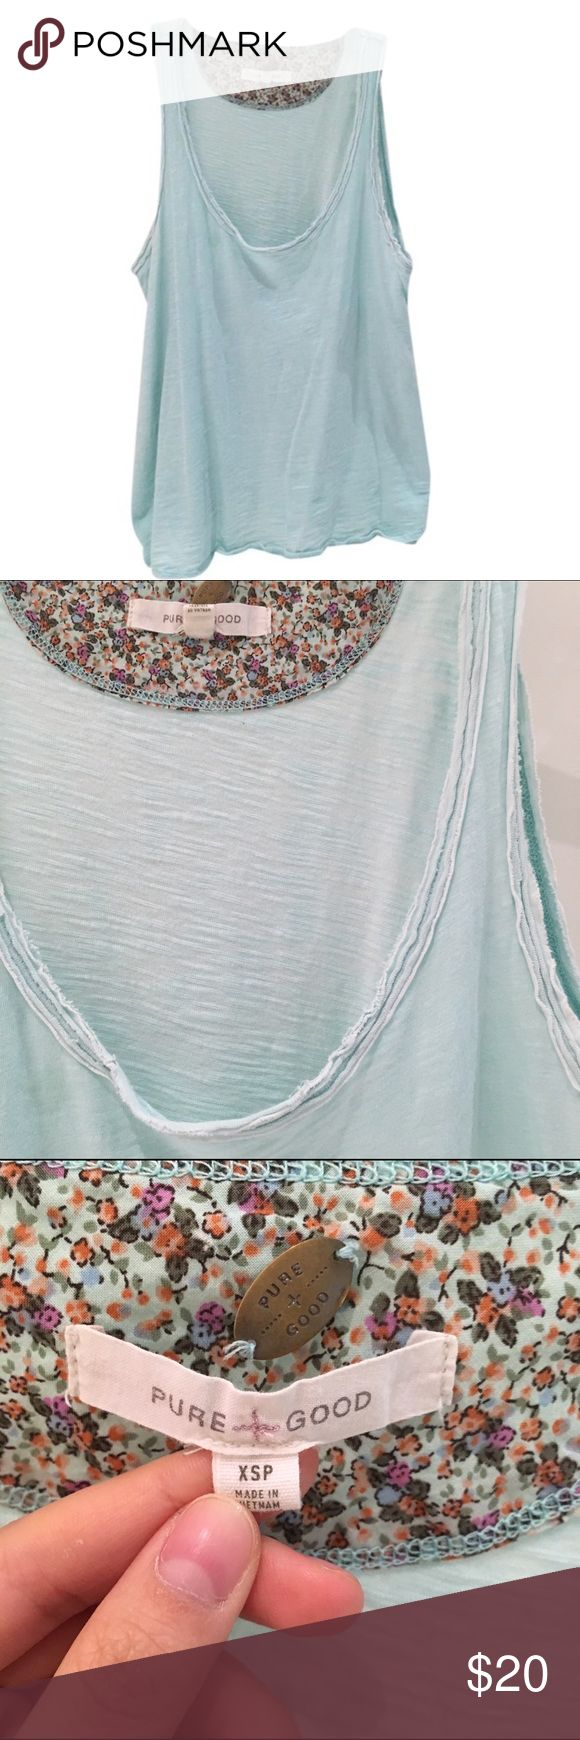 🔑DAILY DEAL🔑 Anthropologie Pure&Good Swing Tank 🎁Price firm                                                                 🔑Bundle to save                                                                                                   👍Like for price drop notifications                                     EUC, no stains spots or loose threads. 100% cotton. Pretty light blue color with folded detail along the sides. One very small hole near belly button (see 5th photo). Anthropologie…